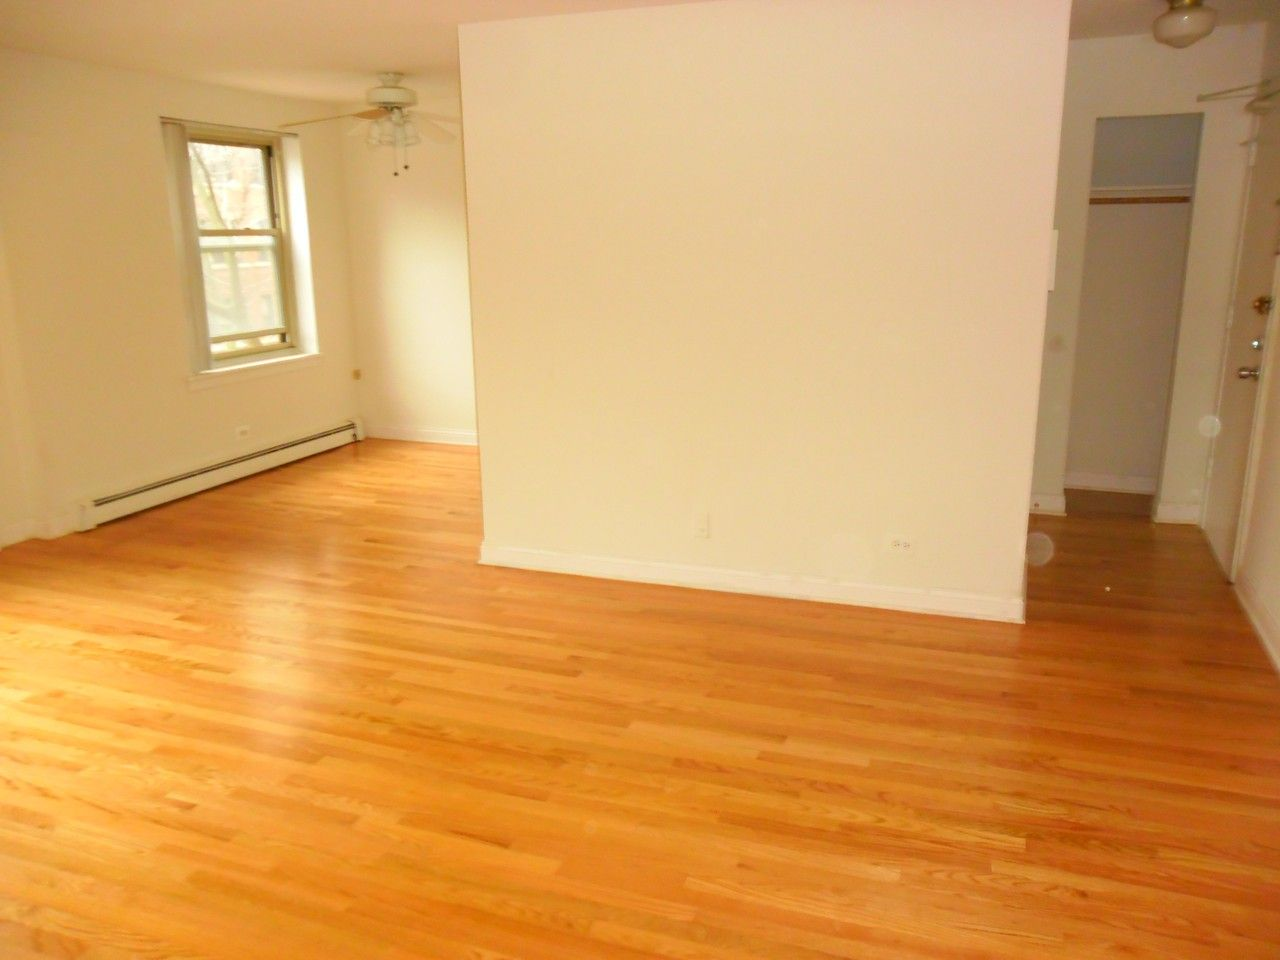 Waveland ave 242 chicago il 60613 1 bedroom apartment - 4 bedroom apartments lakeview chicago ...